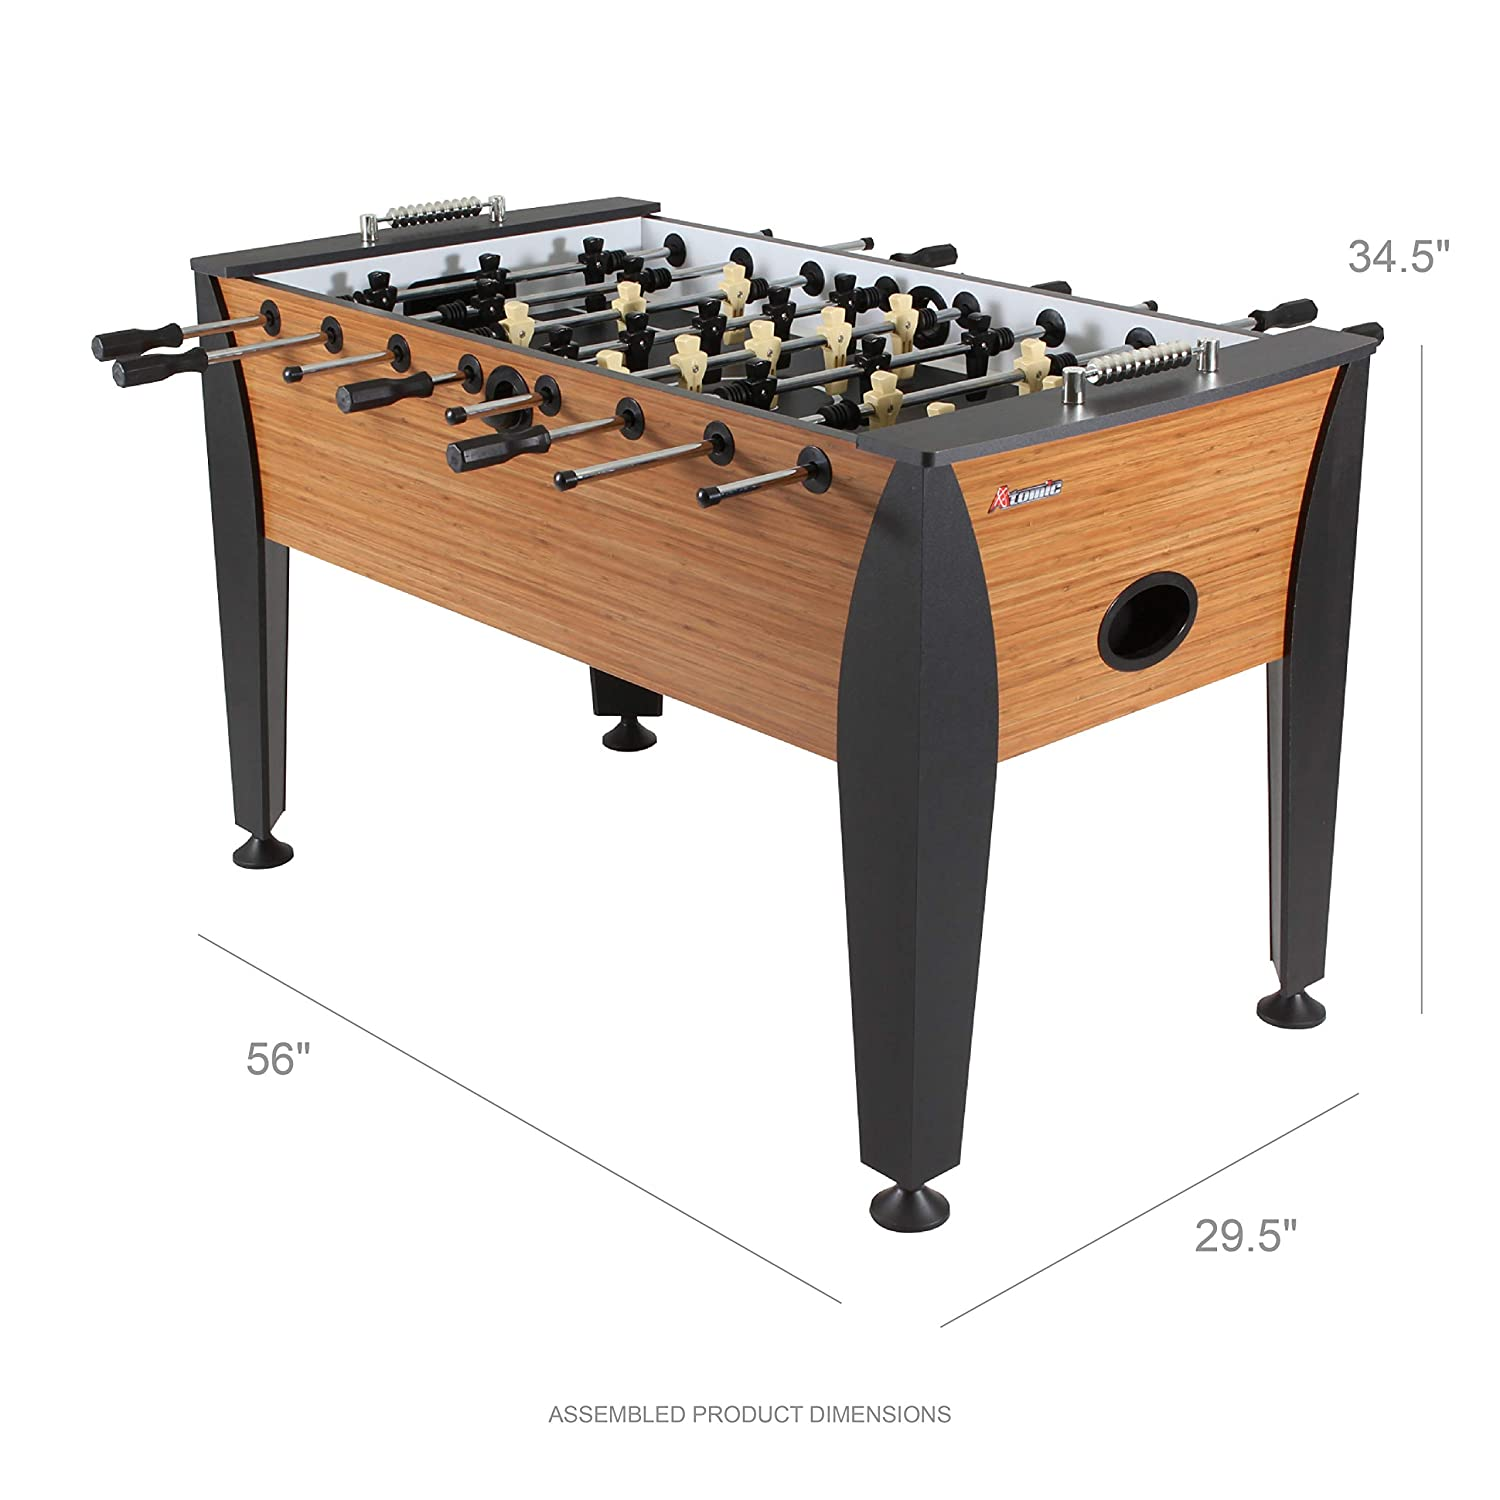 Atomic Pro Force 56 Foosball Table With Internal Ball Return And Ball Entry Leg Levelers And Heavy Duty Legs